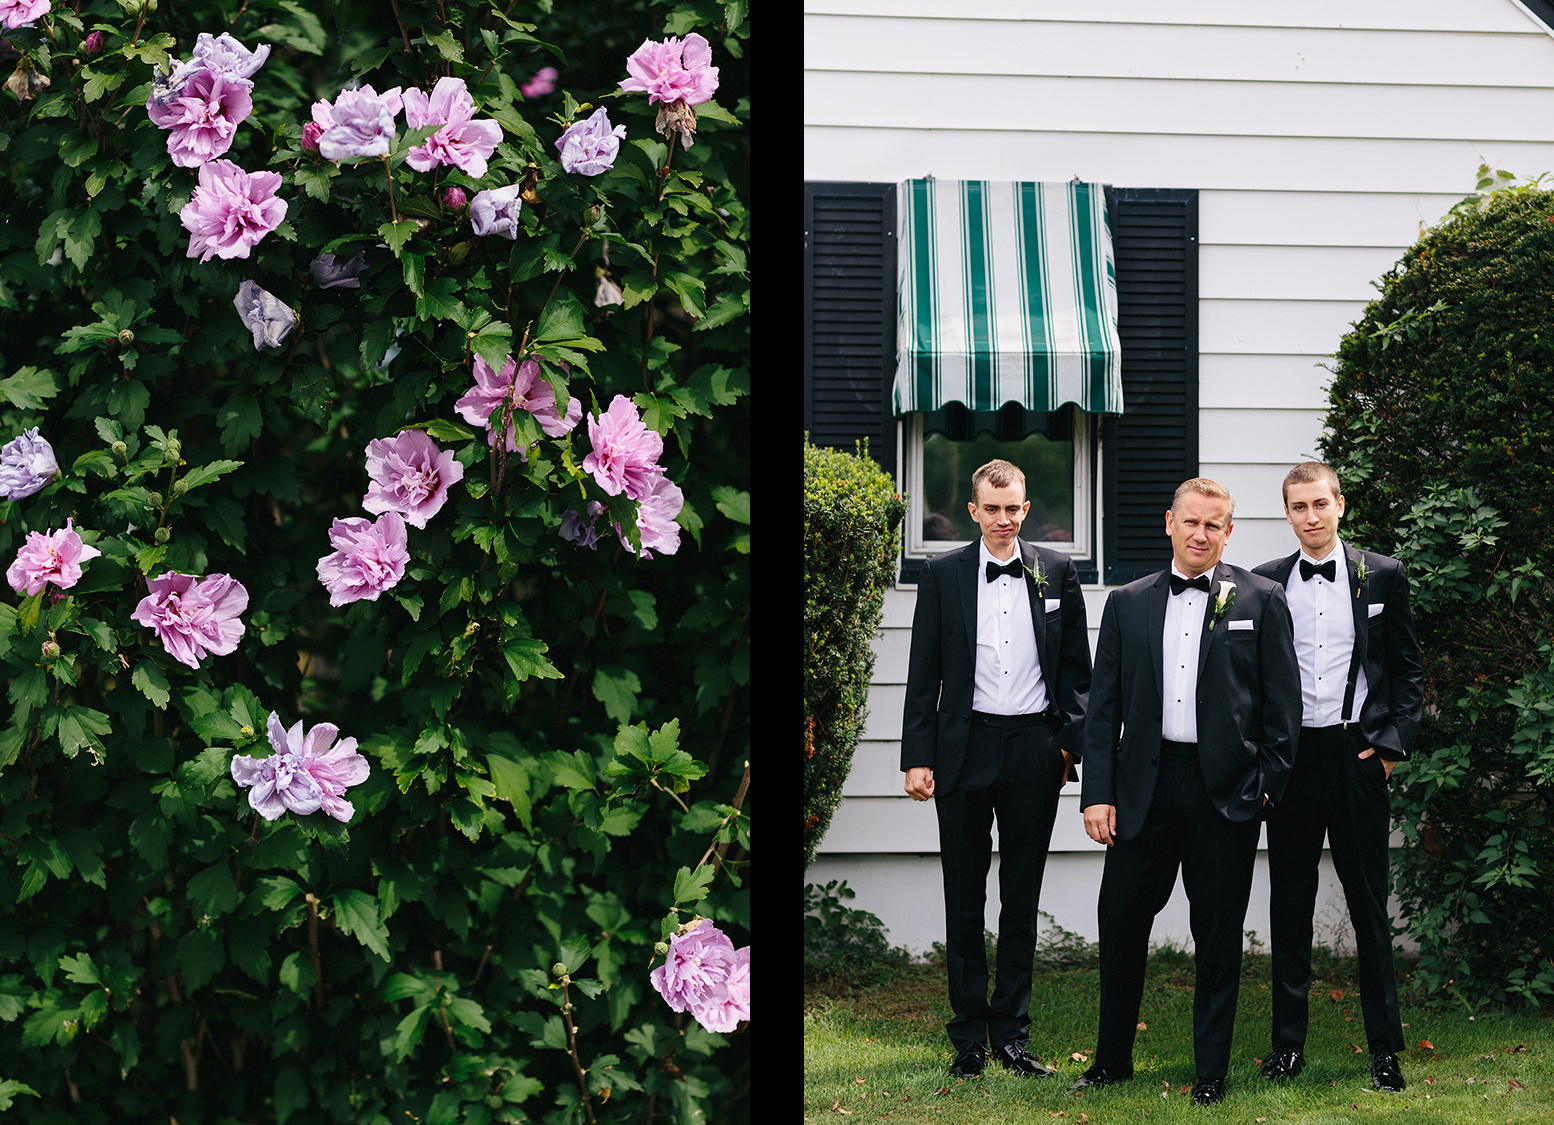 4-Niagara-on-the-Lake-Wedding-Photographers-Best-in-Toronto-Port-Dalhousie-curling-club-venue-mature-couple-wedding-inspiration-airbnb-groom-getting-ready-with-sons-groomsmen.jpg